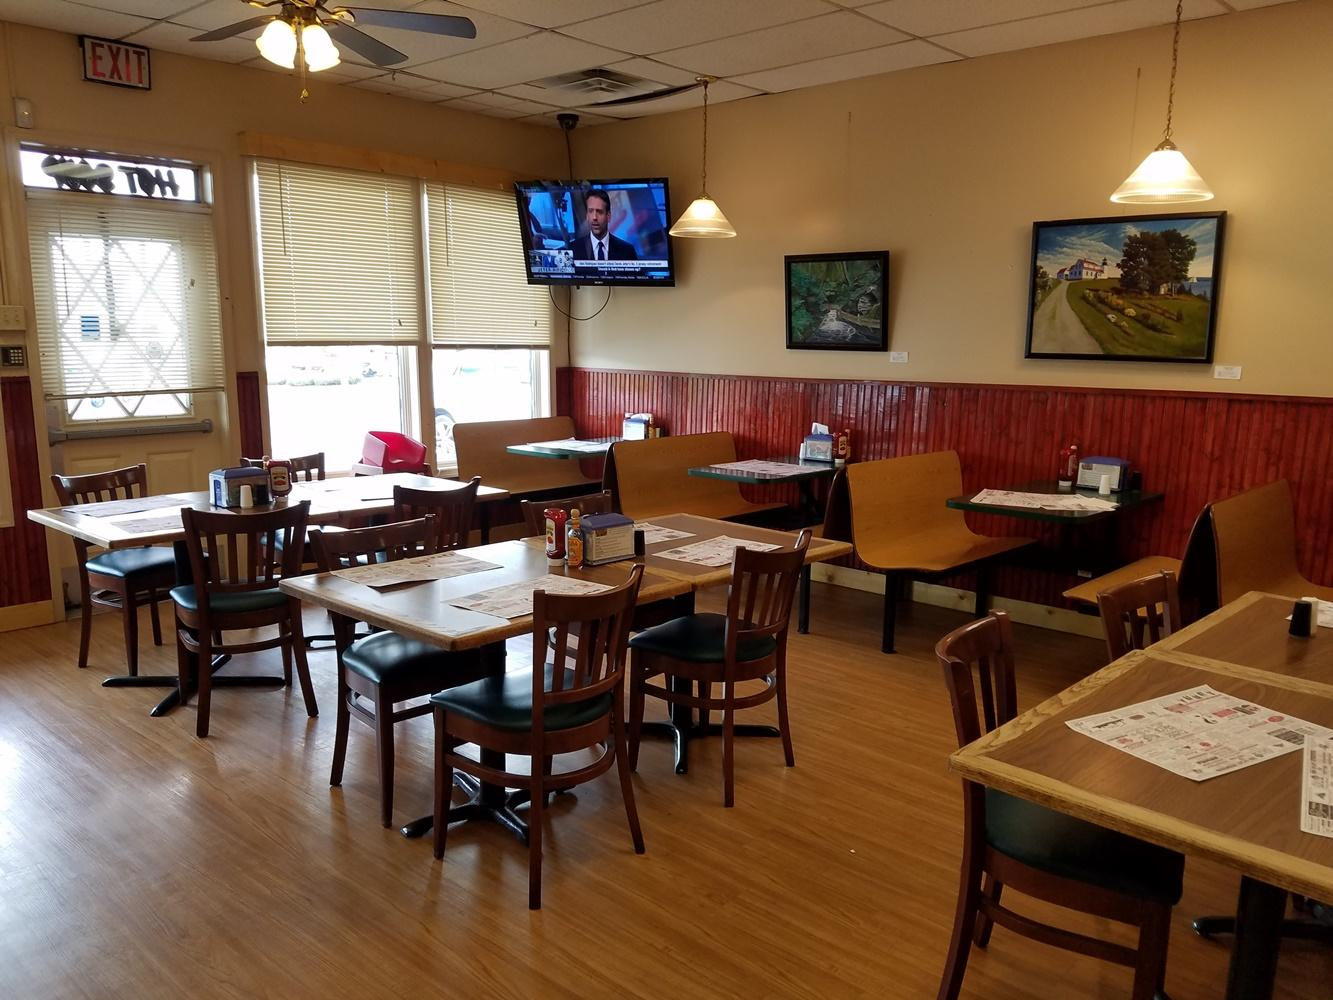 Vinny D's Delii and Catering